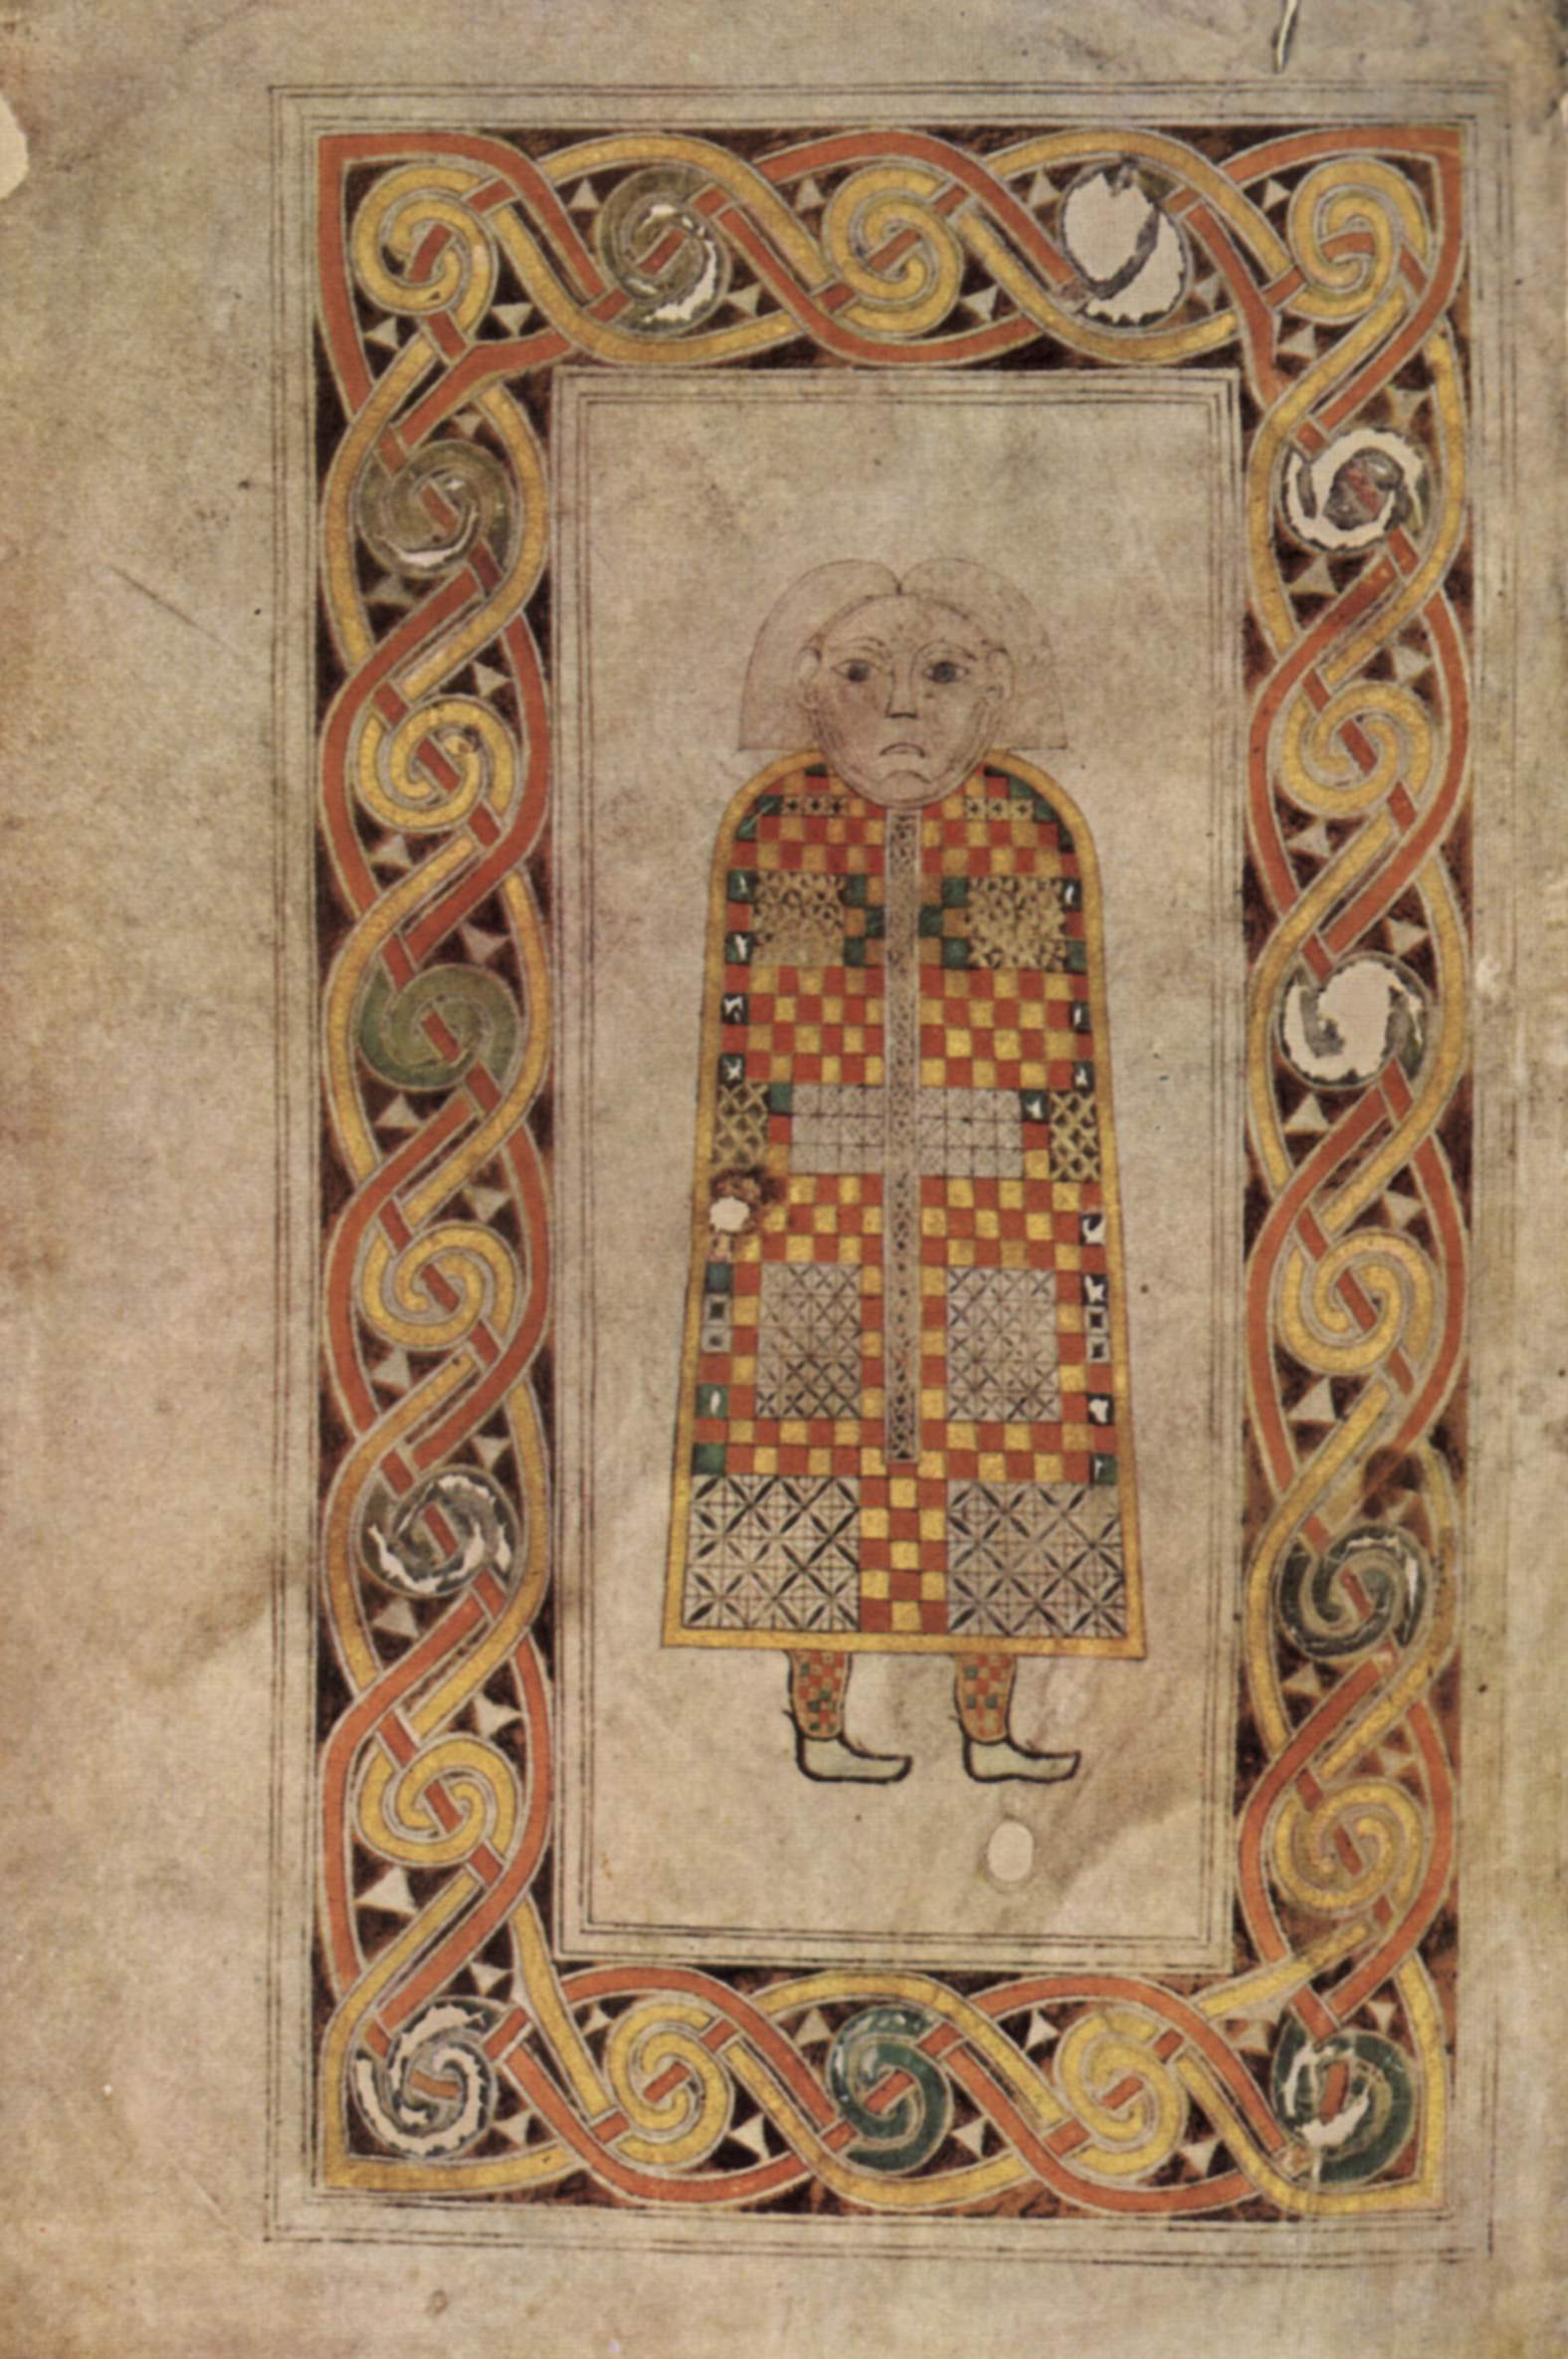 File:Meister des Book of Durrow 001.jpg - Wikipedia